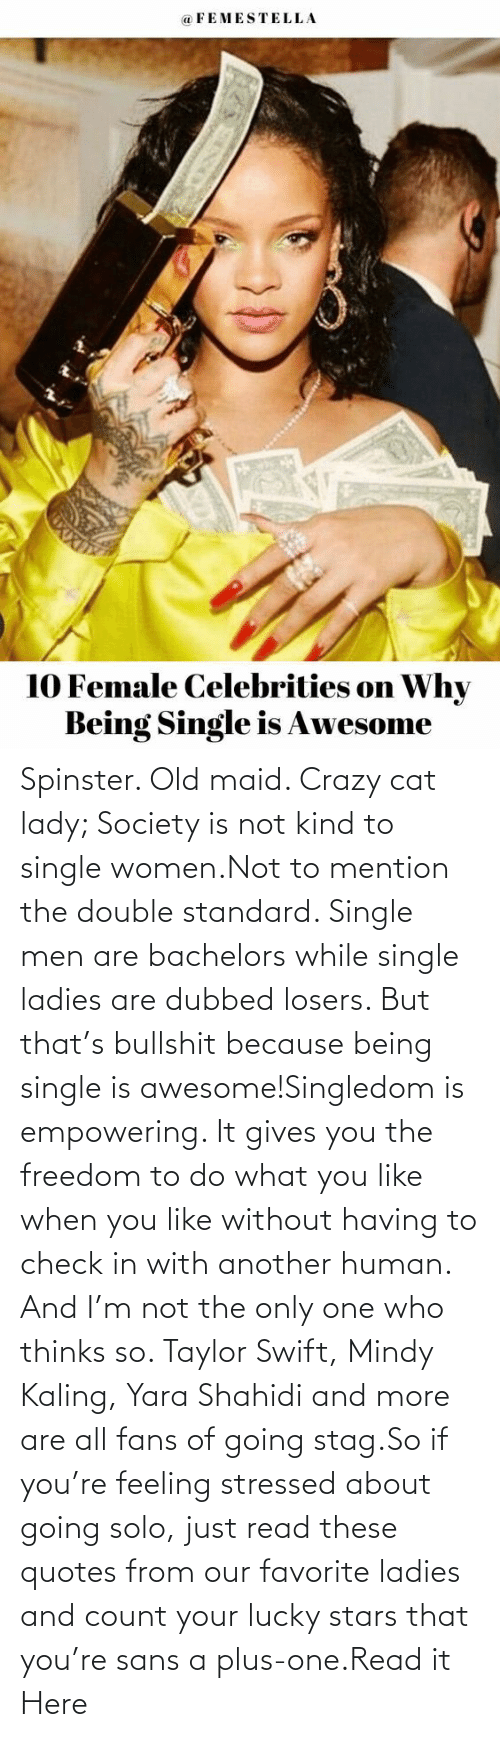 Single: Spinster. Old maid. Crazy cat lady; Society is not kind to single women.Not to mention the double standard. Single men are bachelors while single ladies are dubbed losers. But that's bullshit because being single is awesome!Singledom is empowering. It gives you the freedom to do what you like when you like without having to check in with another human. And I'm not the only one who thinks so. Taylor Swift, Mindy Kaling, Yara Shahidi and more are all fans of going stag.So if you're feeling stressed about going solo, just read these quotes from our favorite ladies and count your lucky stars that you're sans a plus-one.Read it Here